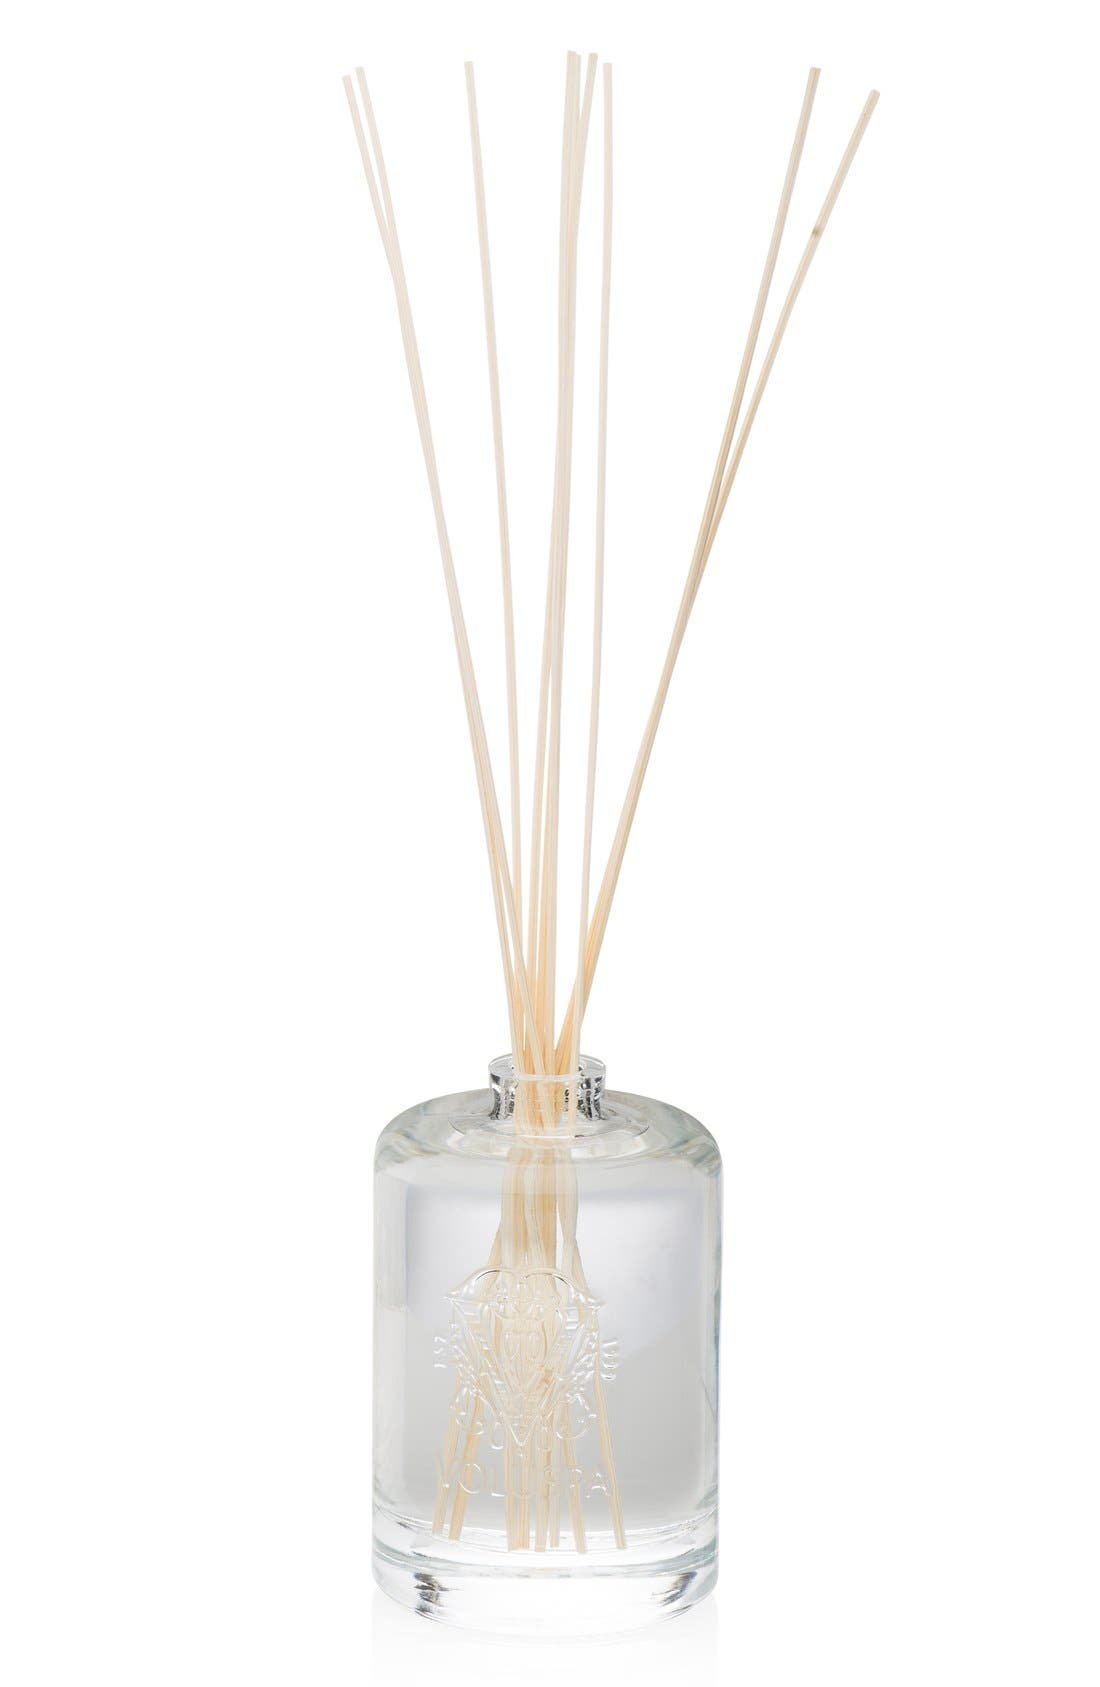 Maison Blanc Gardenia Colonia Fragrant Oil Diffuser,                             Alternate thumbnail 2, color,                             No Color